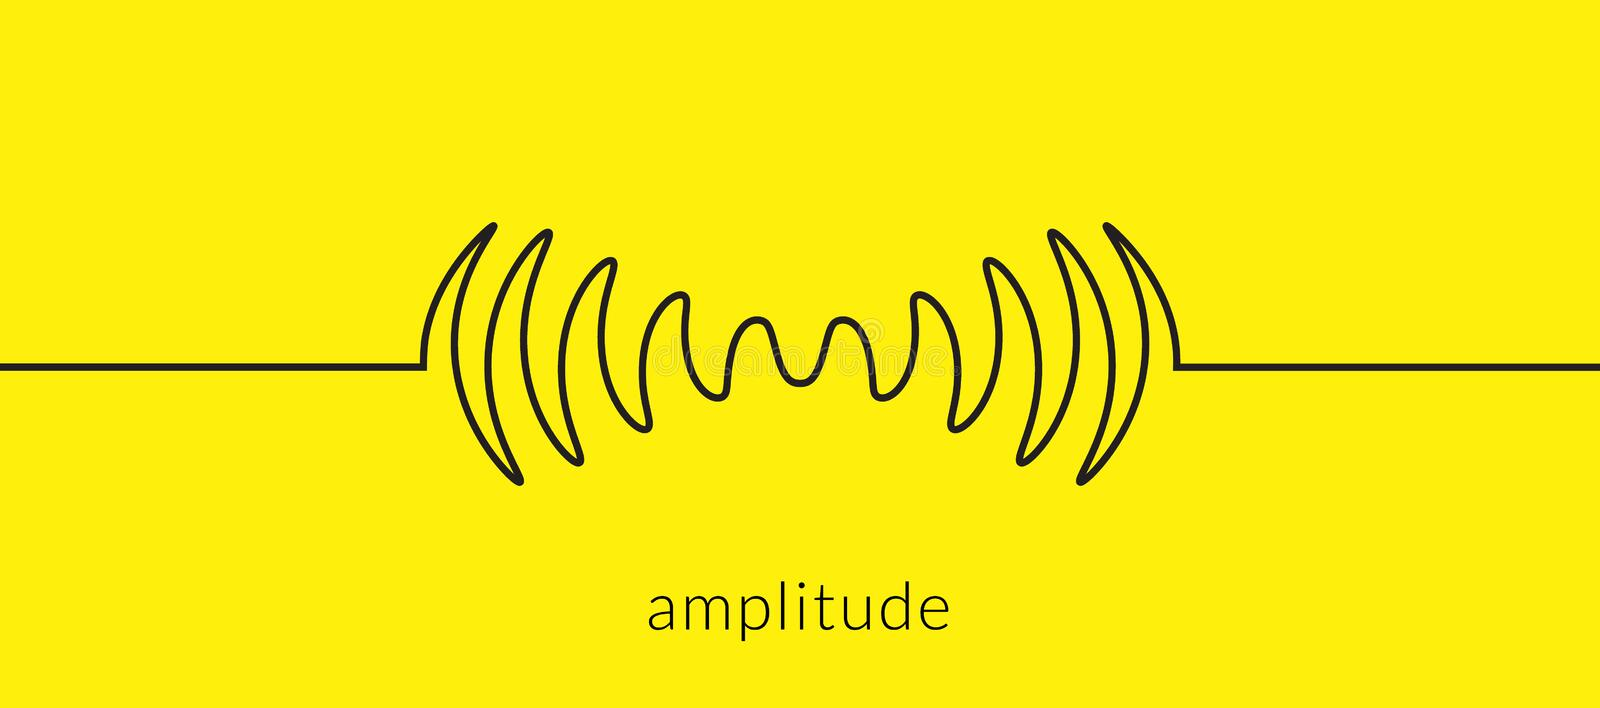 Audio sound wave music waveform. Pulse audio record design signal line.  vector illustration